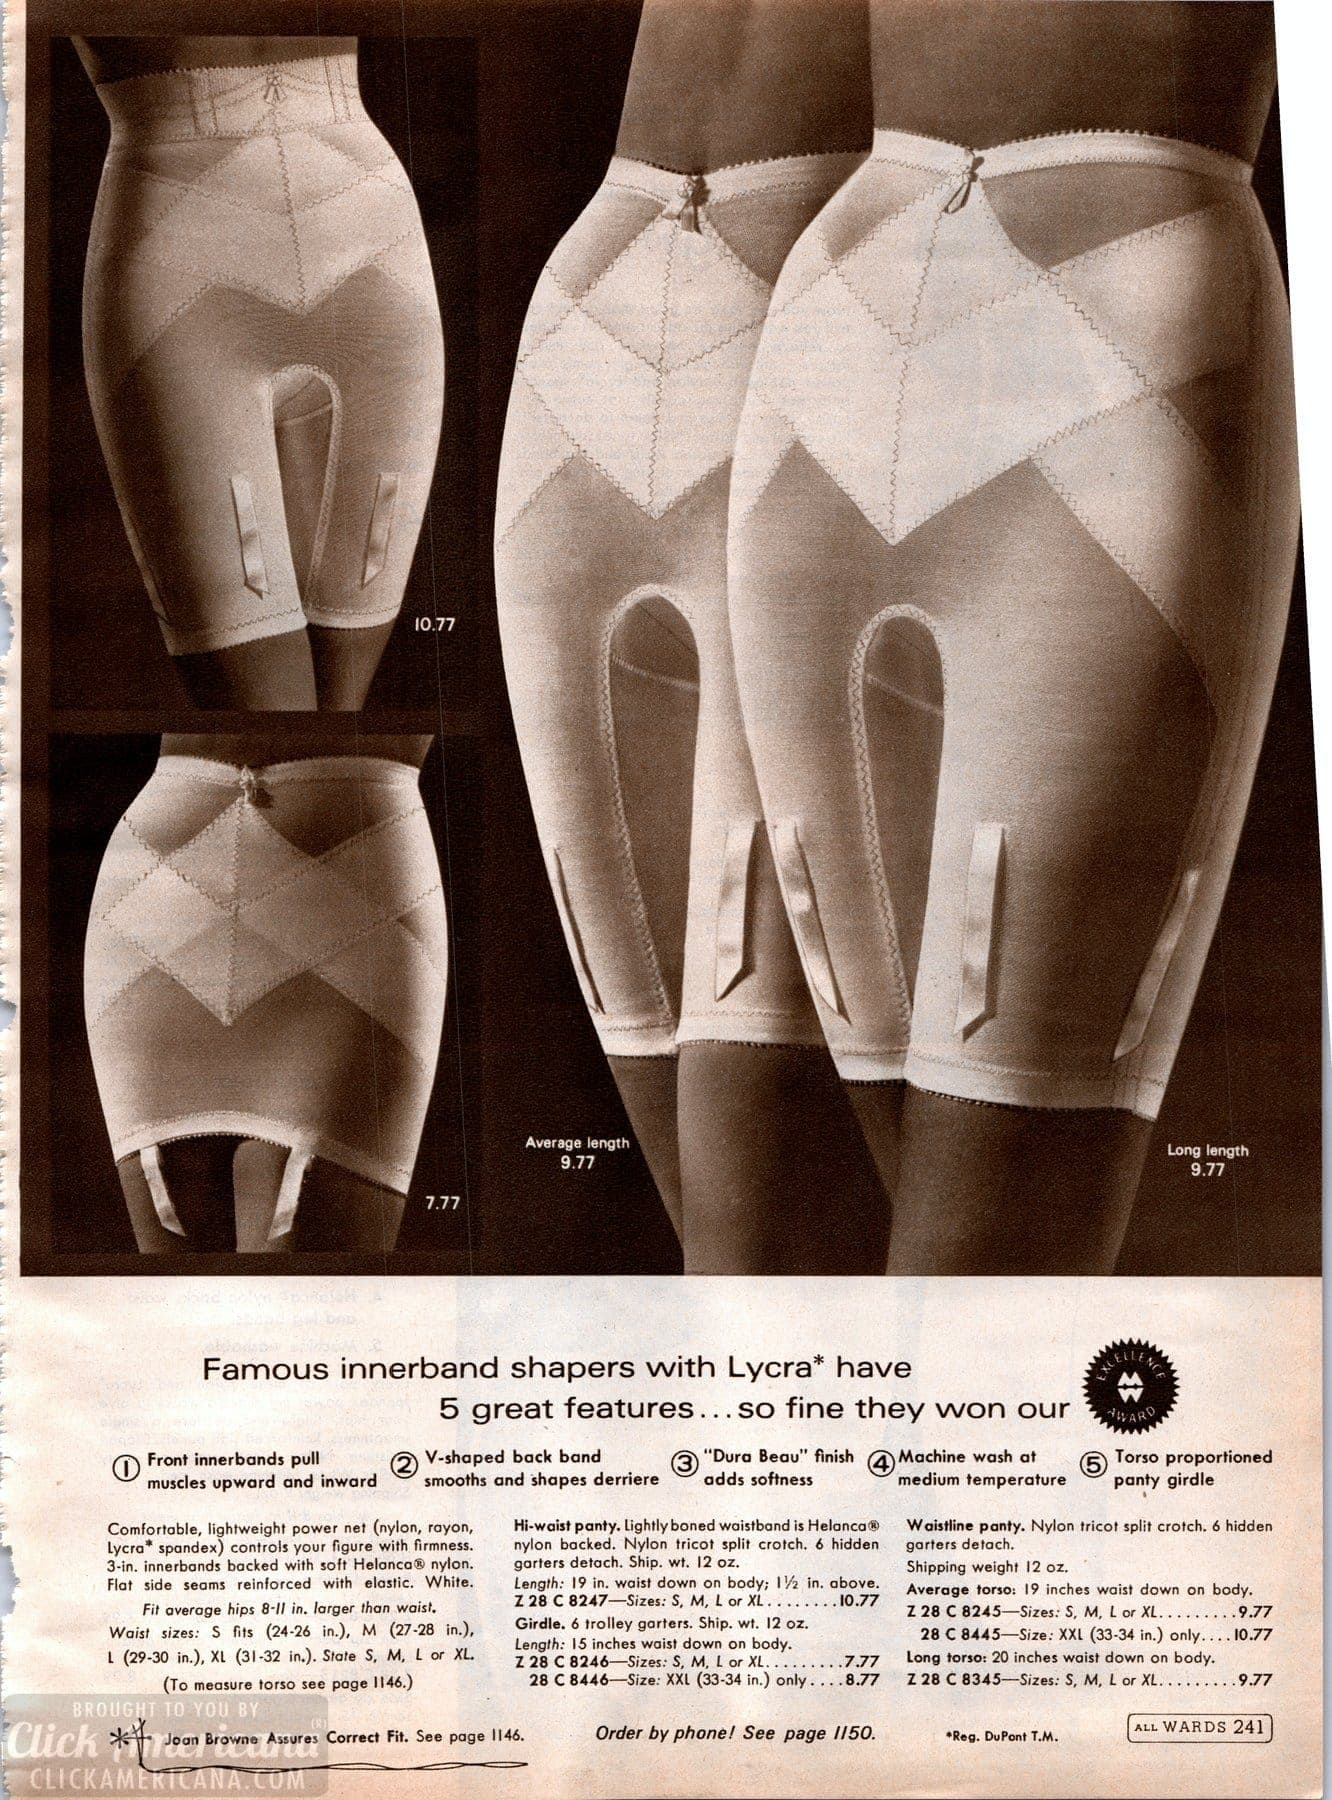 Vintage '60s lingerie - panty girdles from 1968 (8)